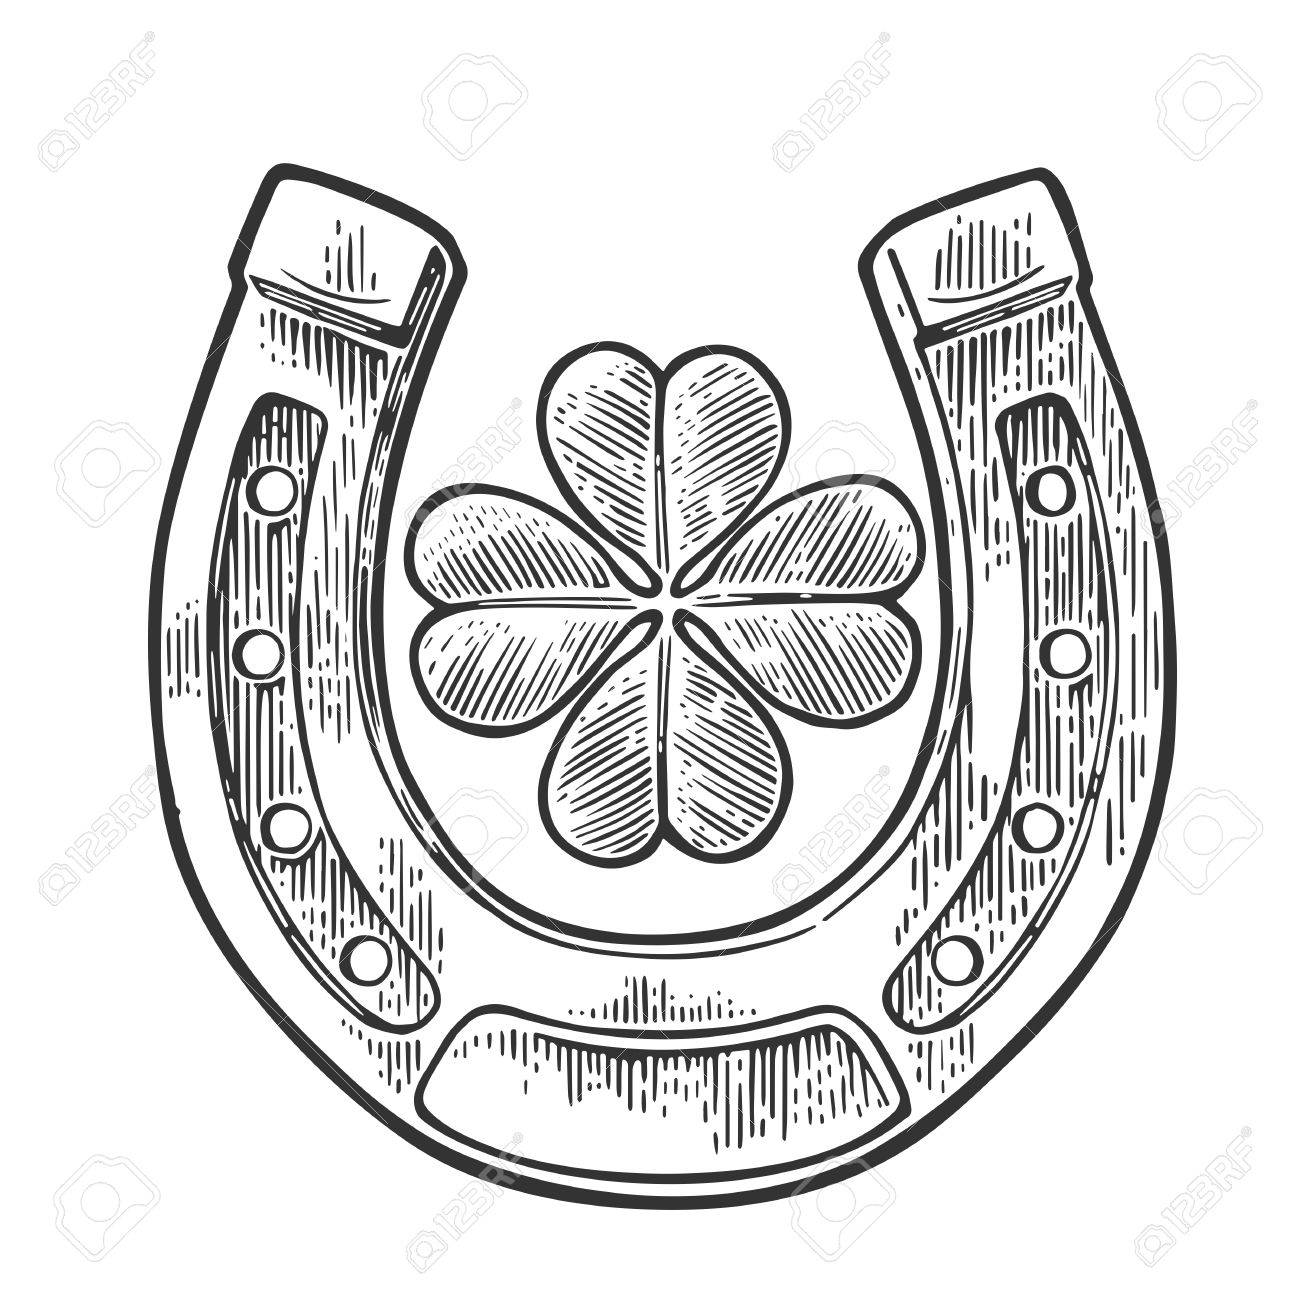 Good luck four leaf clover and horseshoe. Vintage vector engraving illustration for info graphic, poster, web. Black on white background - 54777103